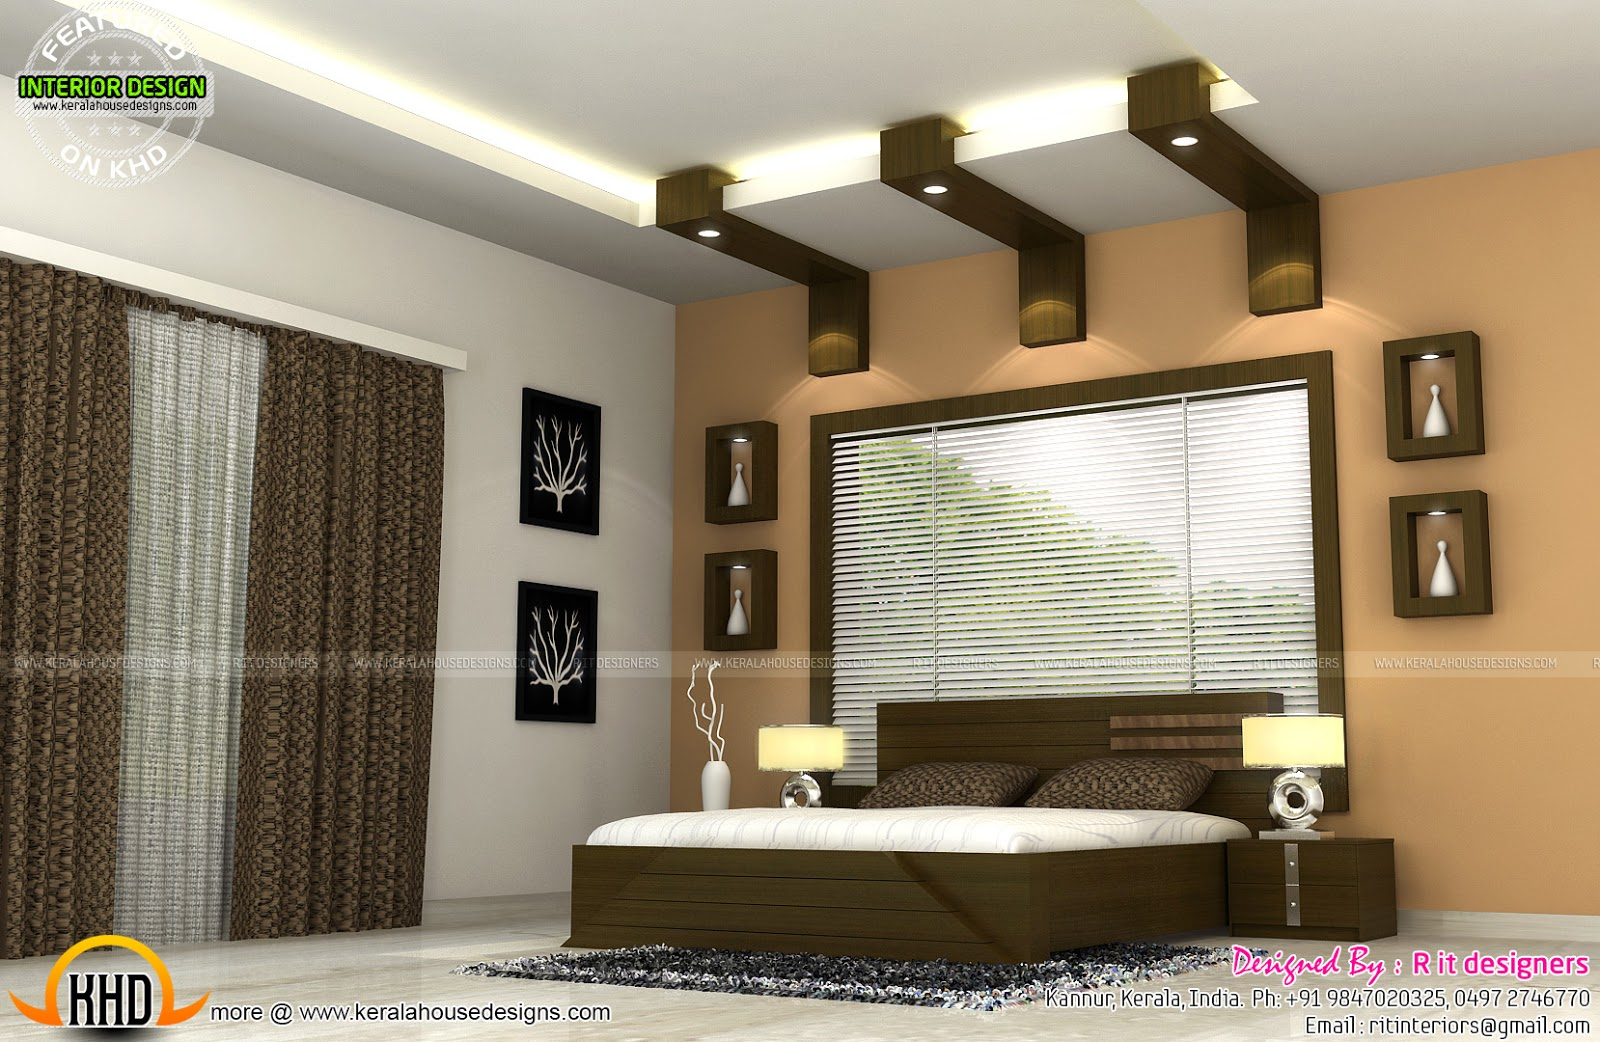 Interiors of bedrooms and kitchen kerala home design and for Interior house design pictures